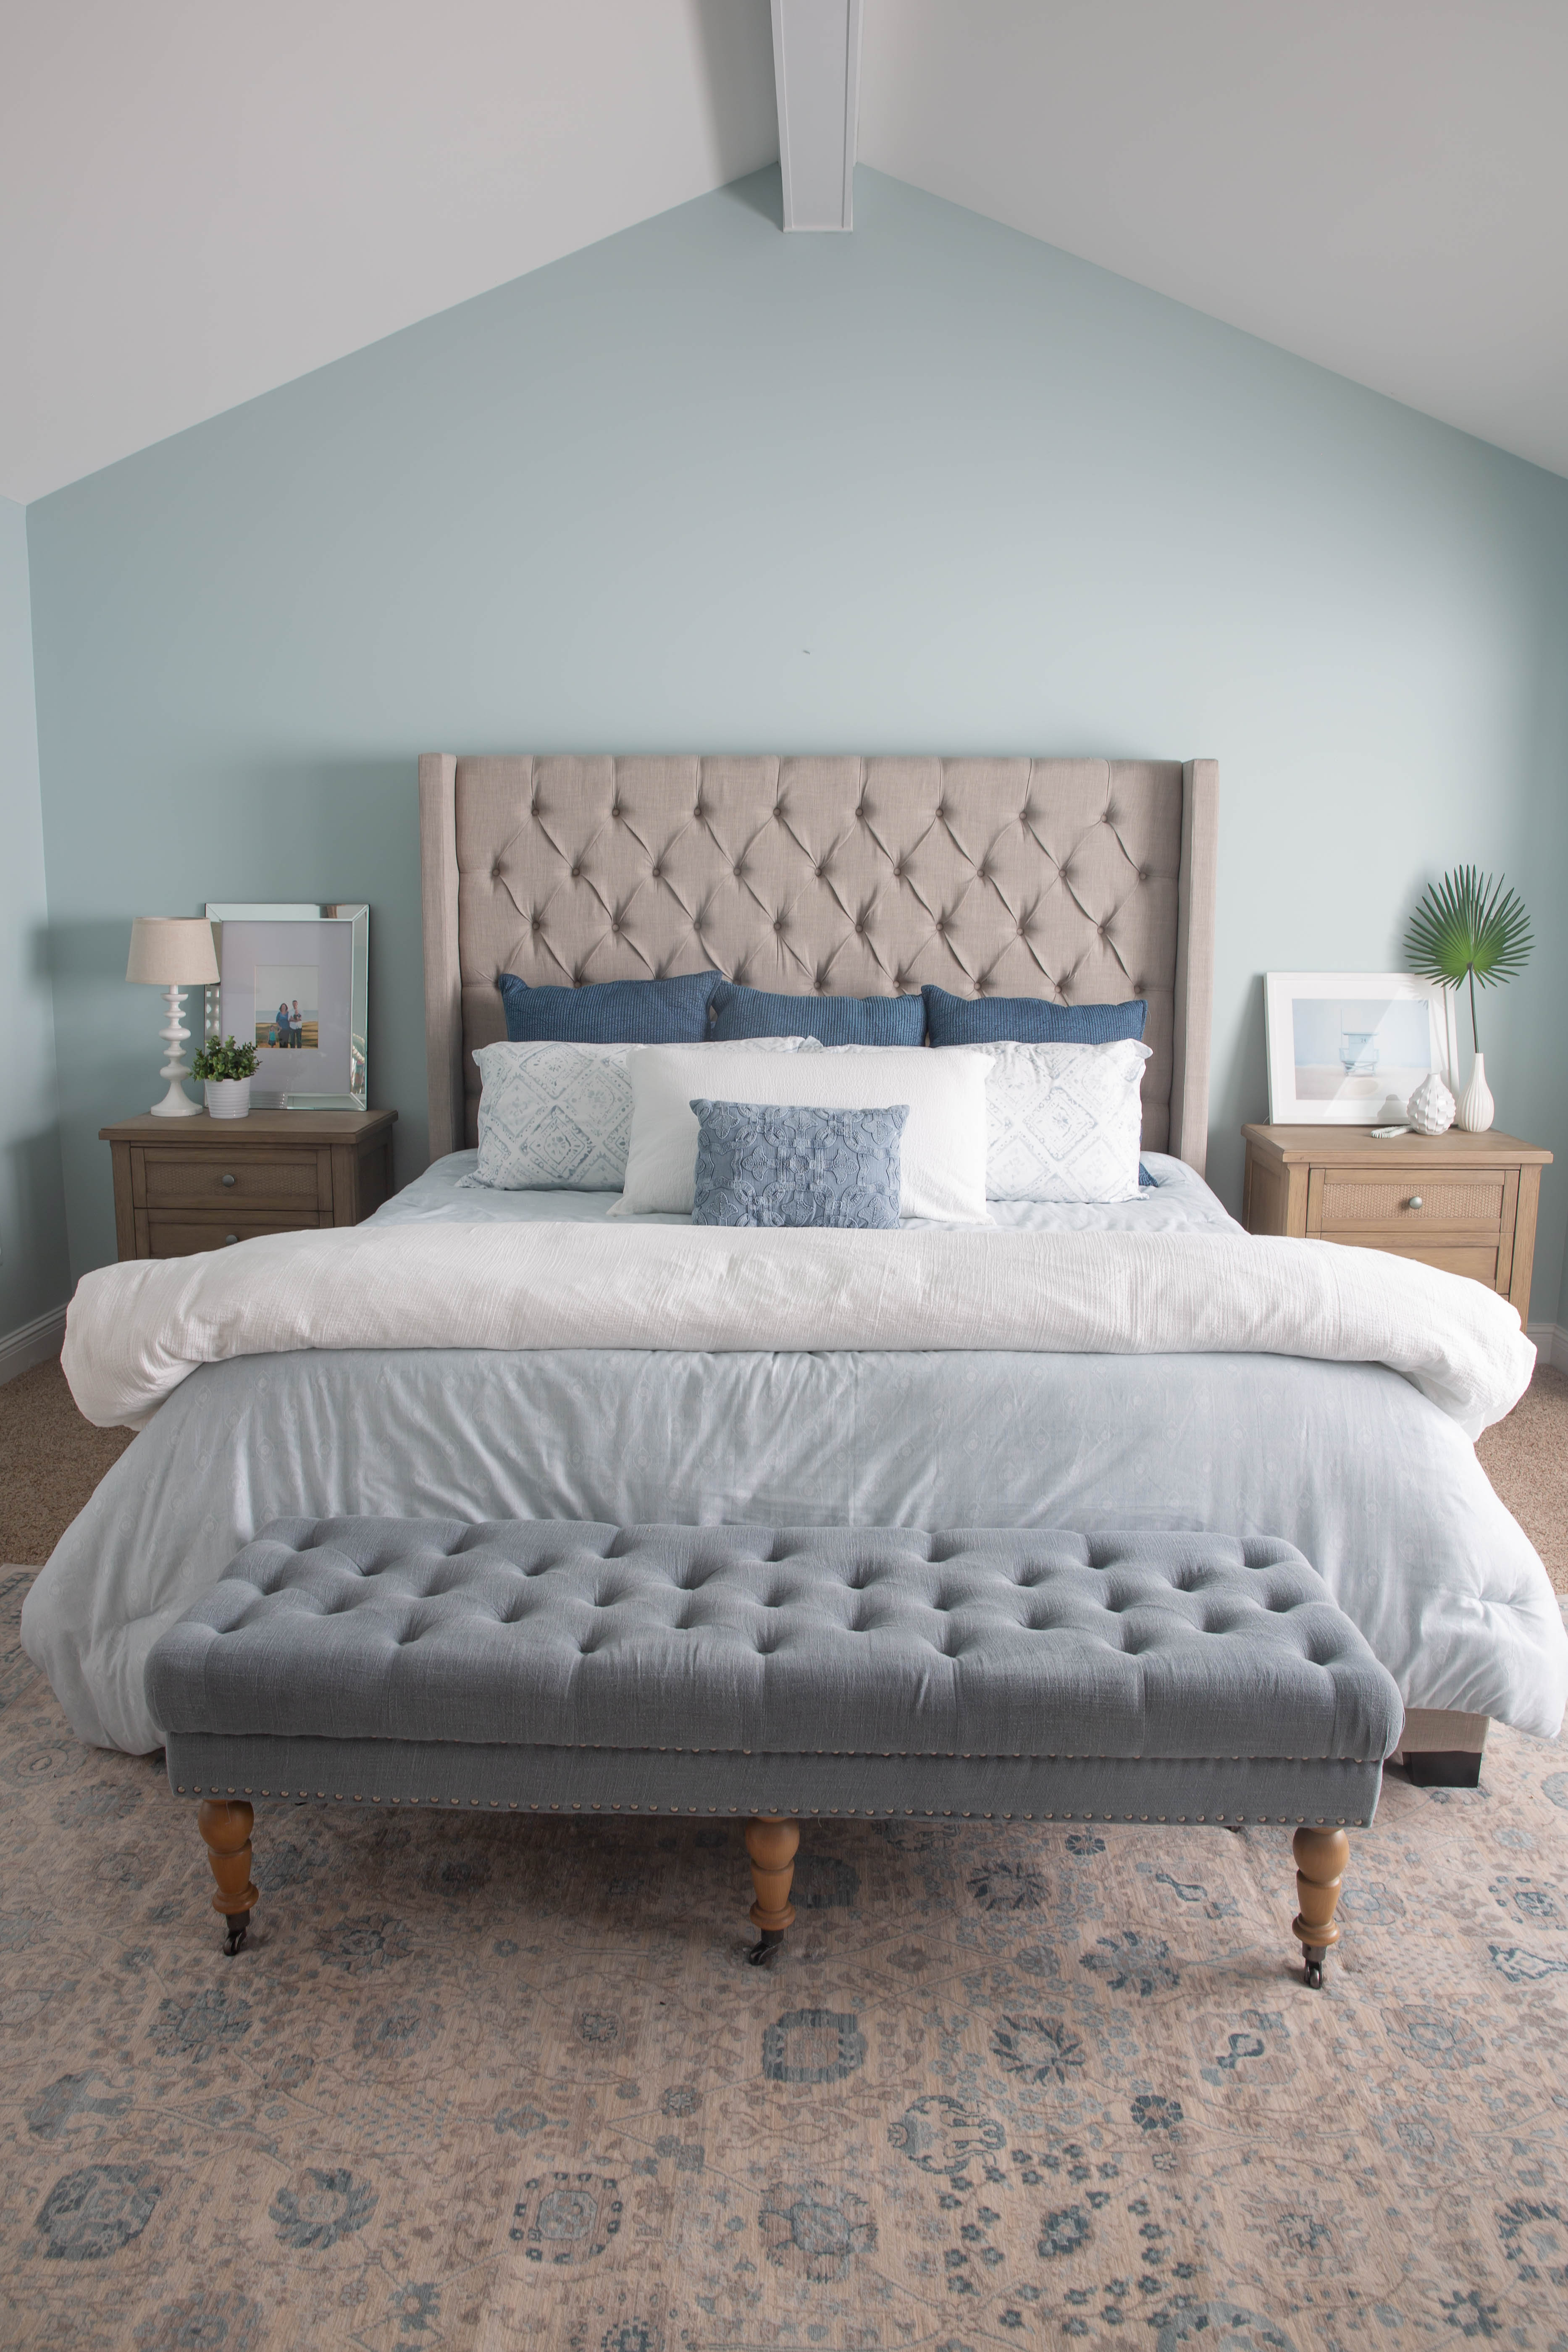 Before and After: Bedding Refresh